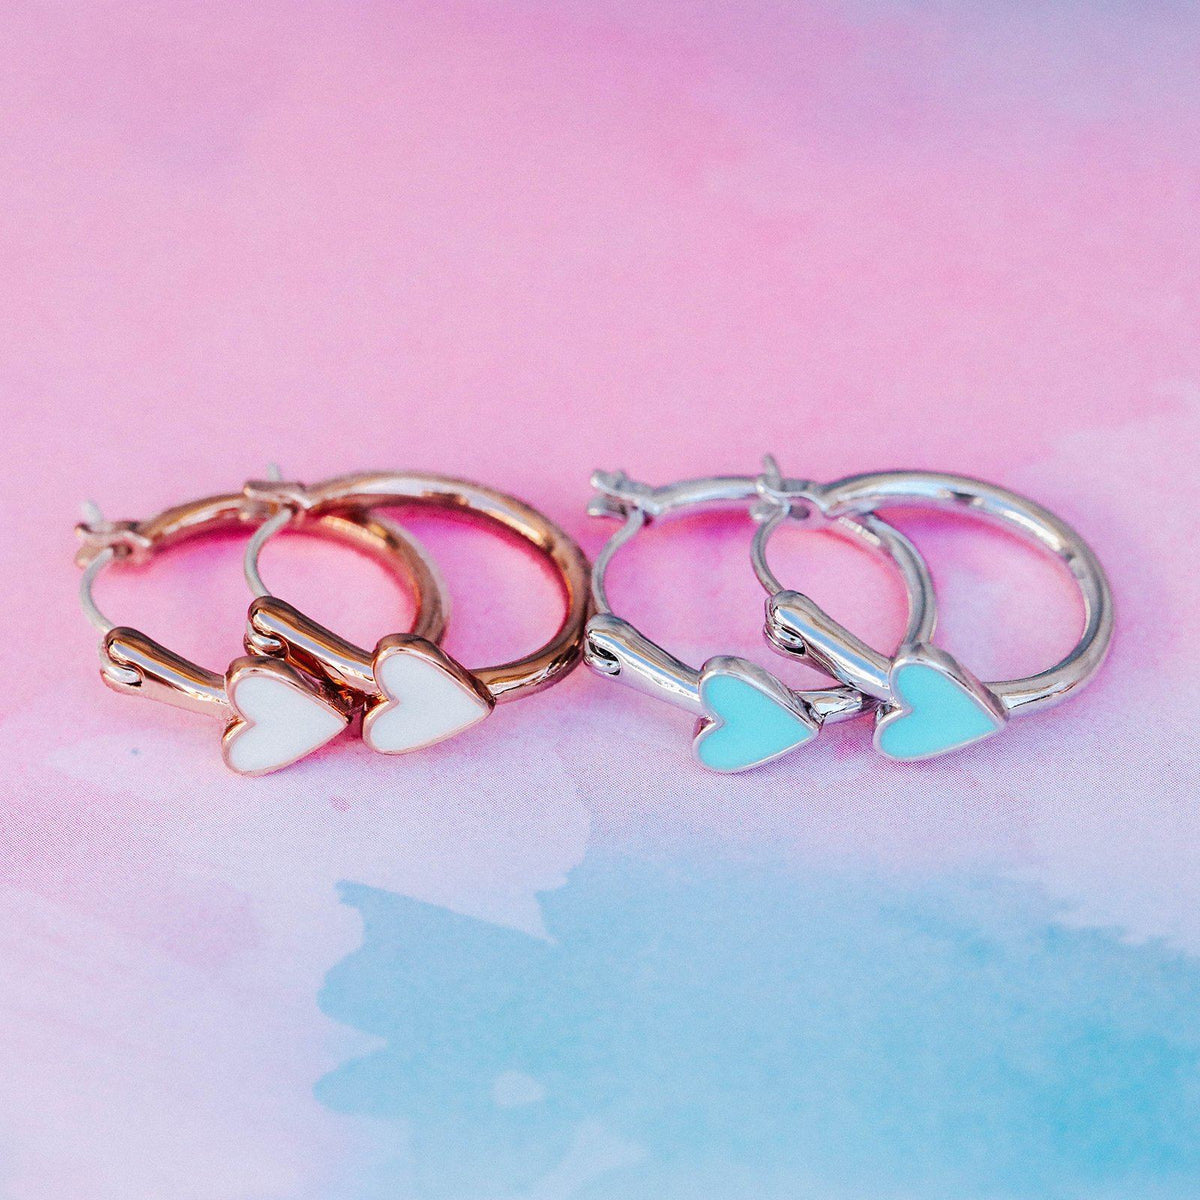 Petite Heart Hoop Earrings 8